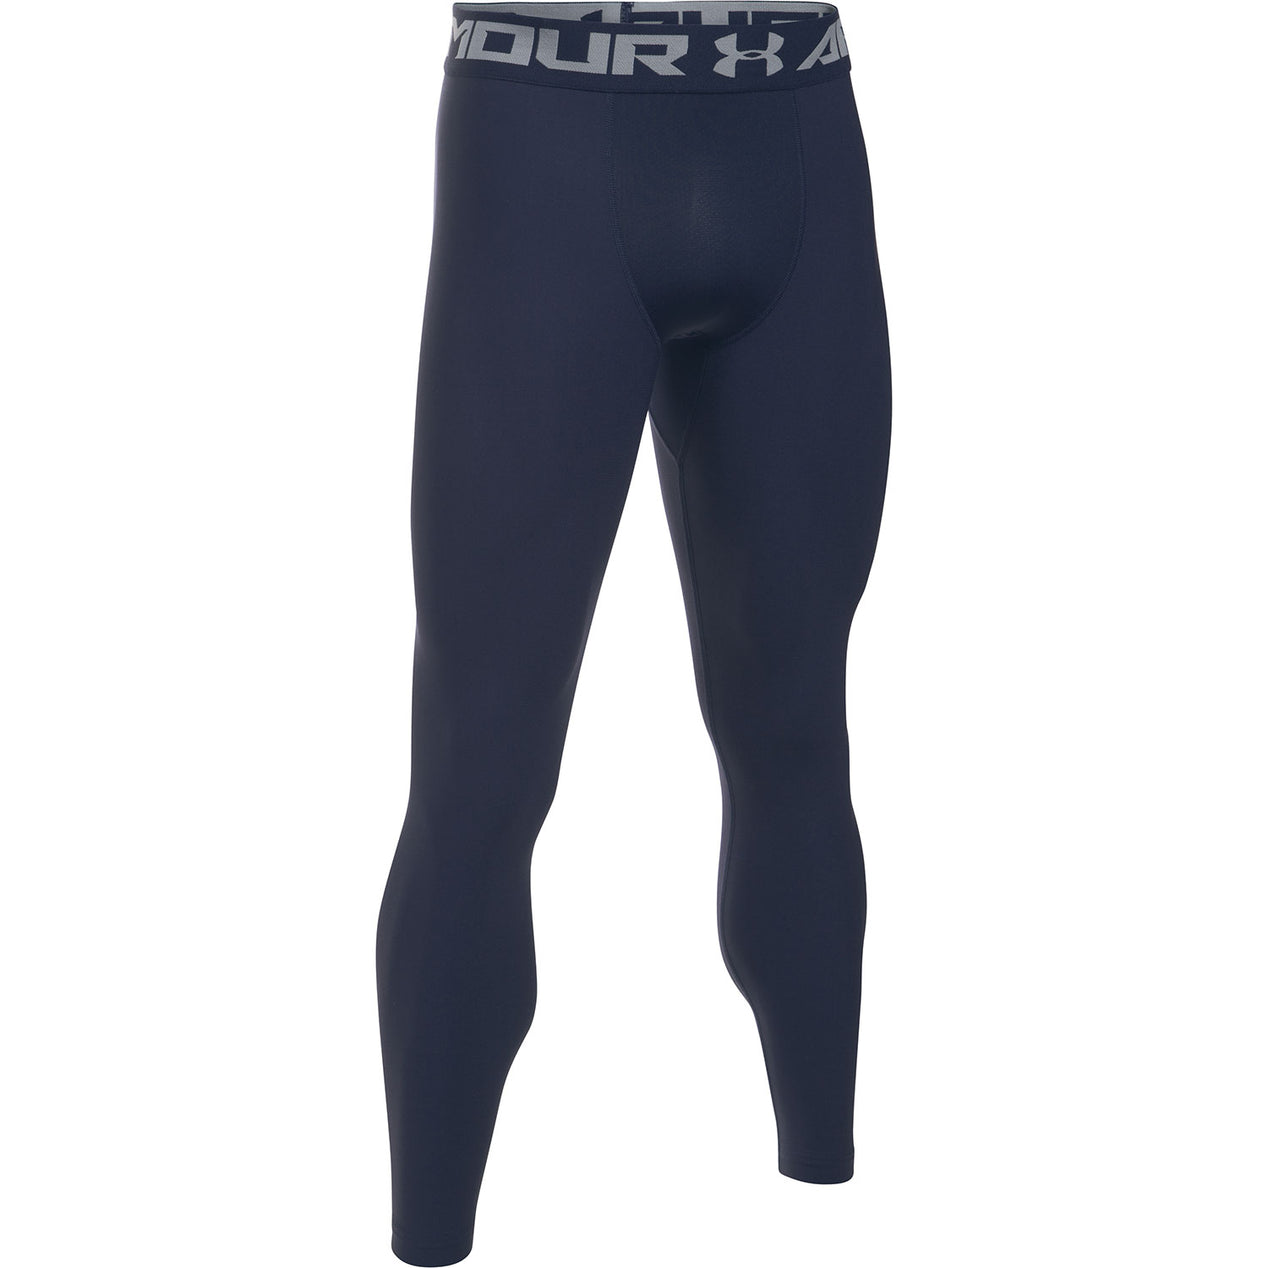 fad0affa7ba6f Under Armour Men's Heatgear Armour Legging | Altitude Sports